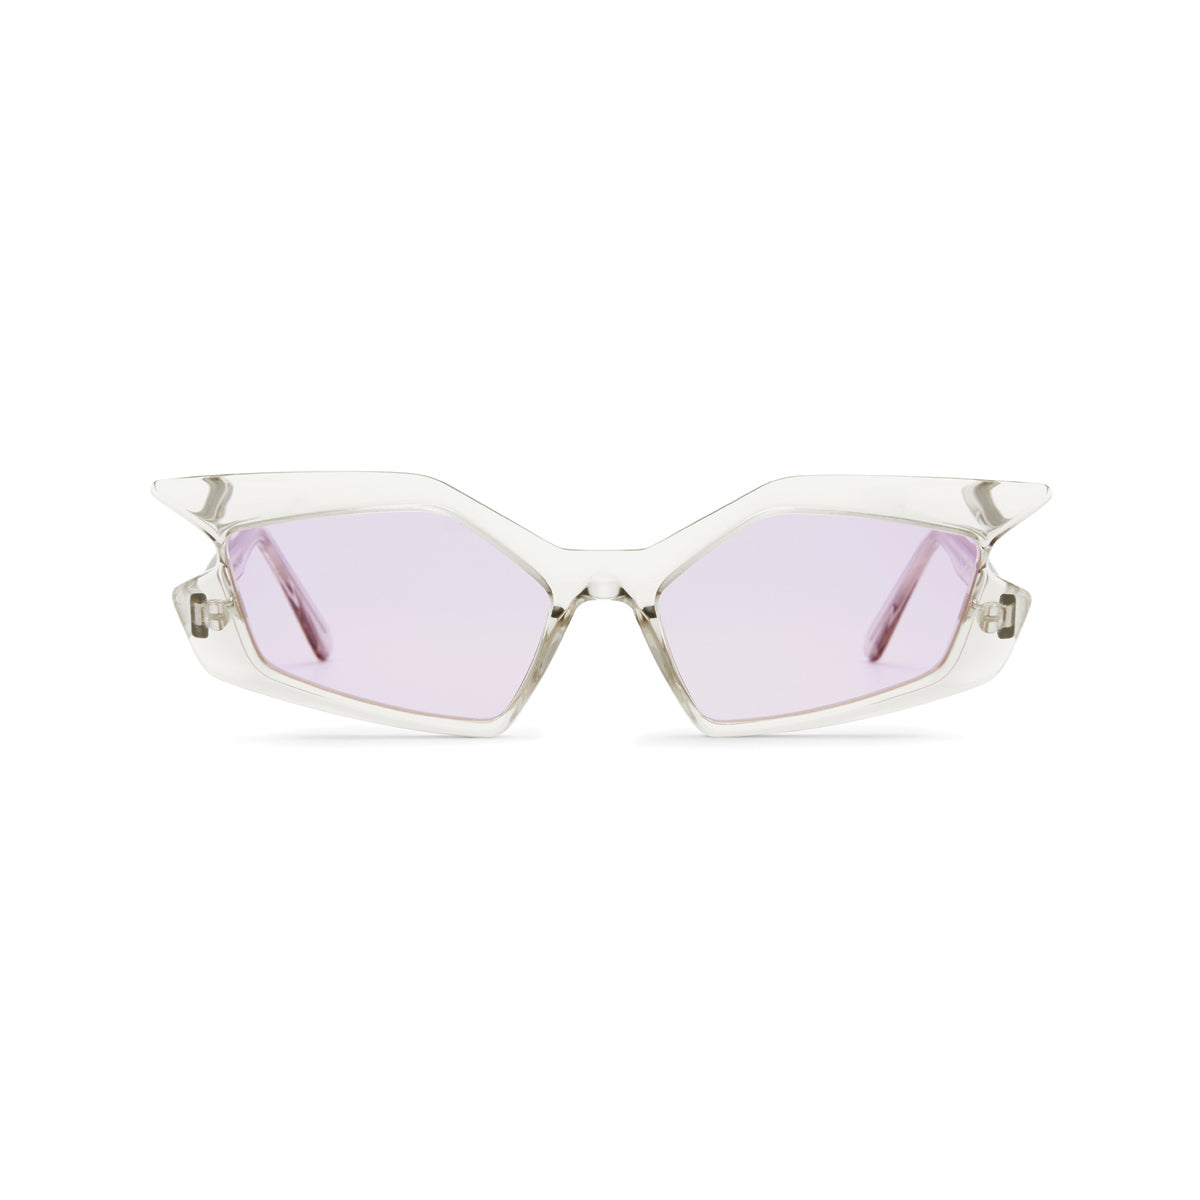 Batcaver Sunglasses Transparent